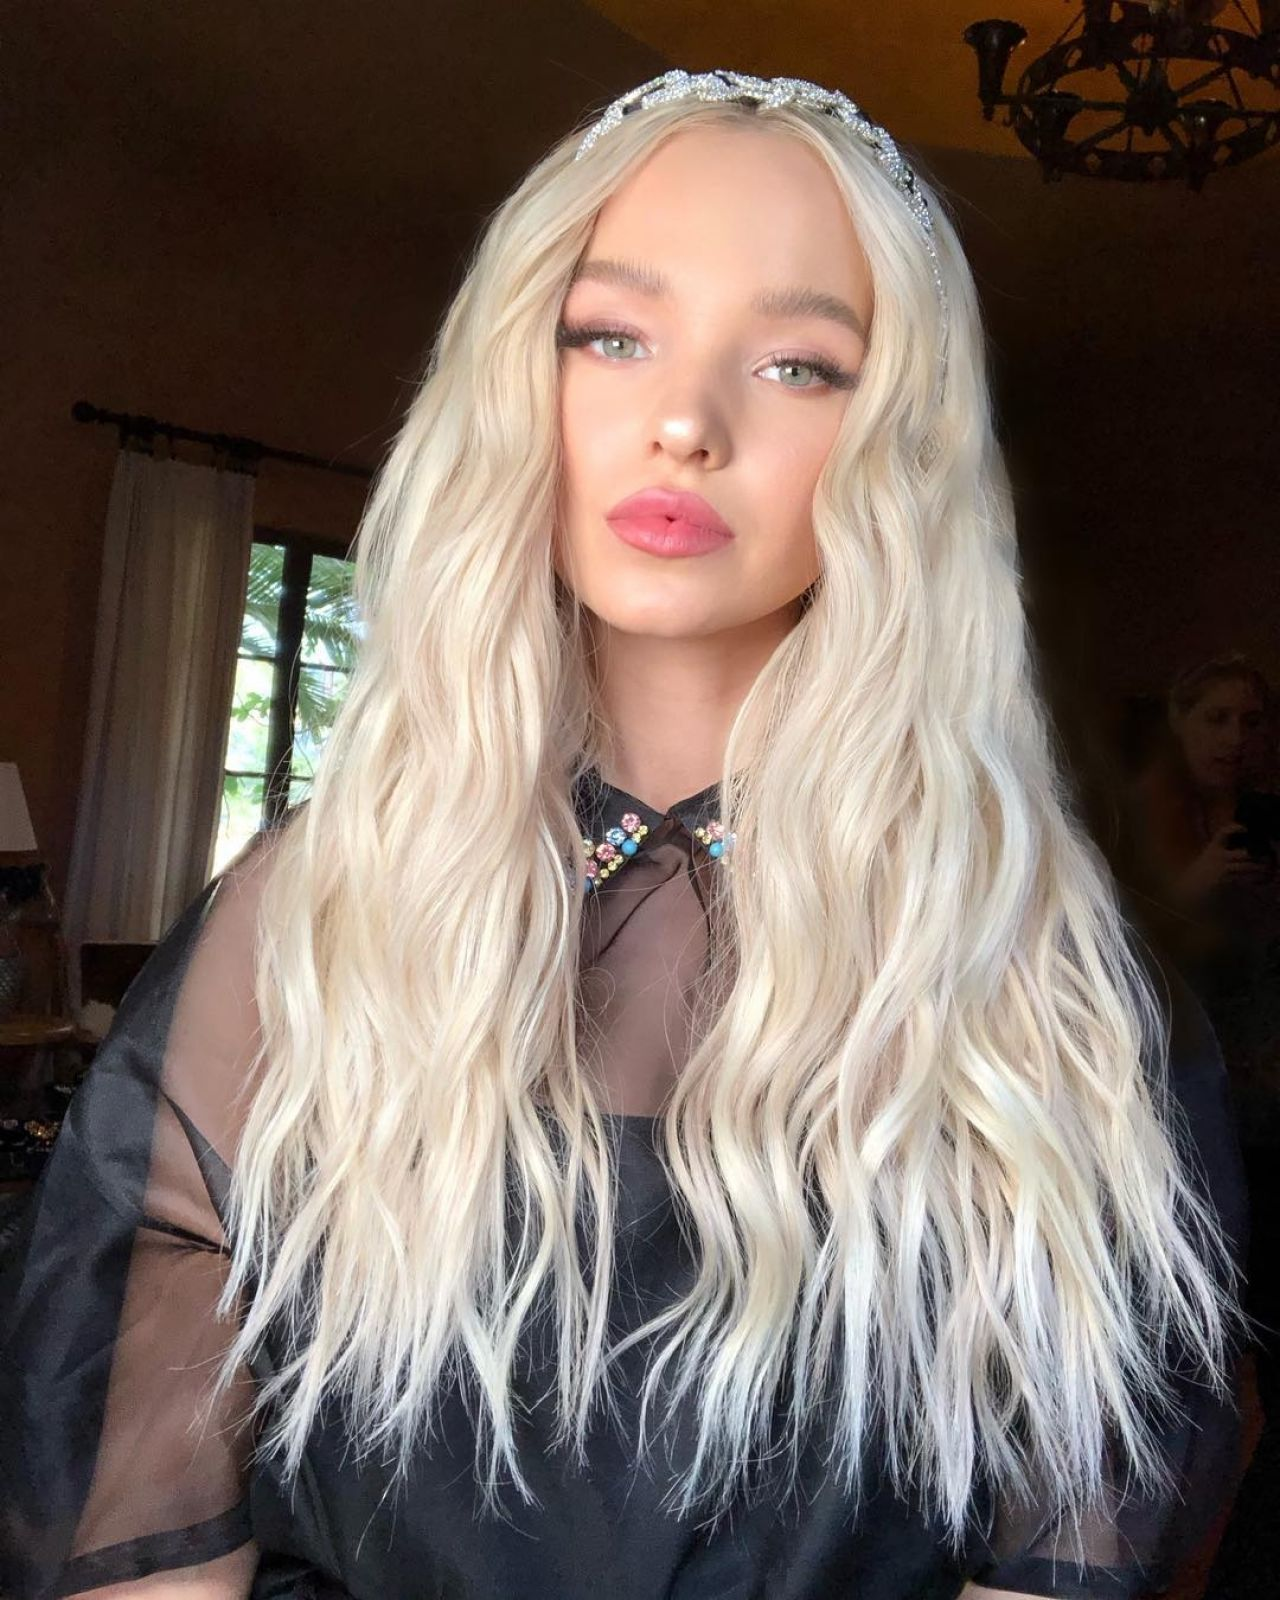 Dove Cameron Photos - Dove Cameron Net Worth, Pics, Wallpapers, Career and Biography